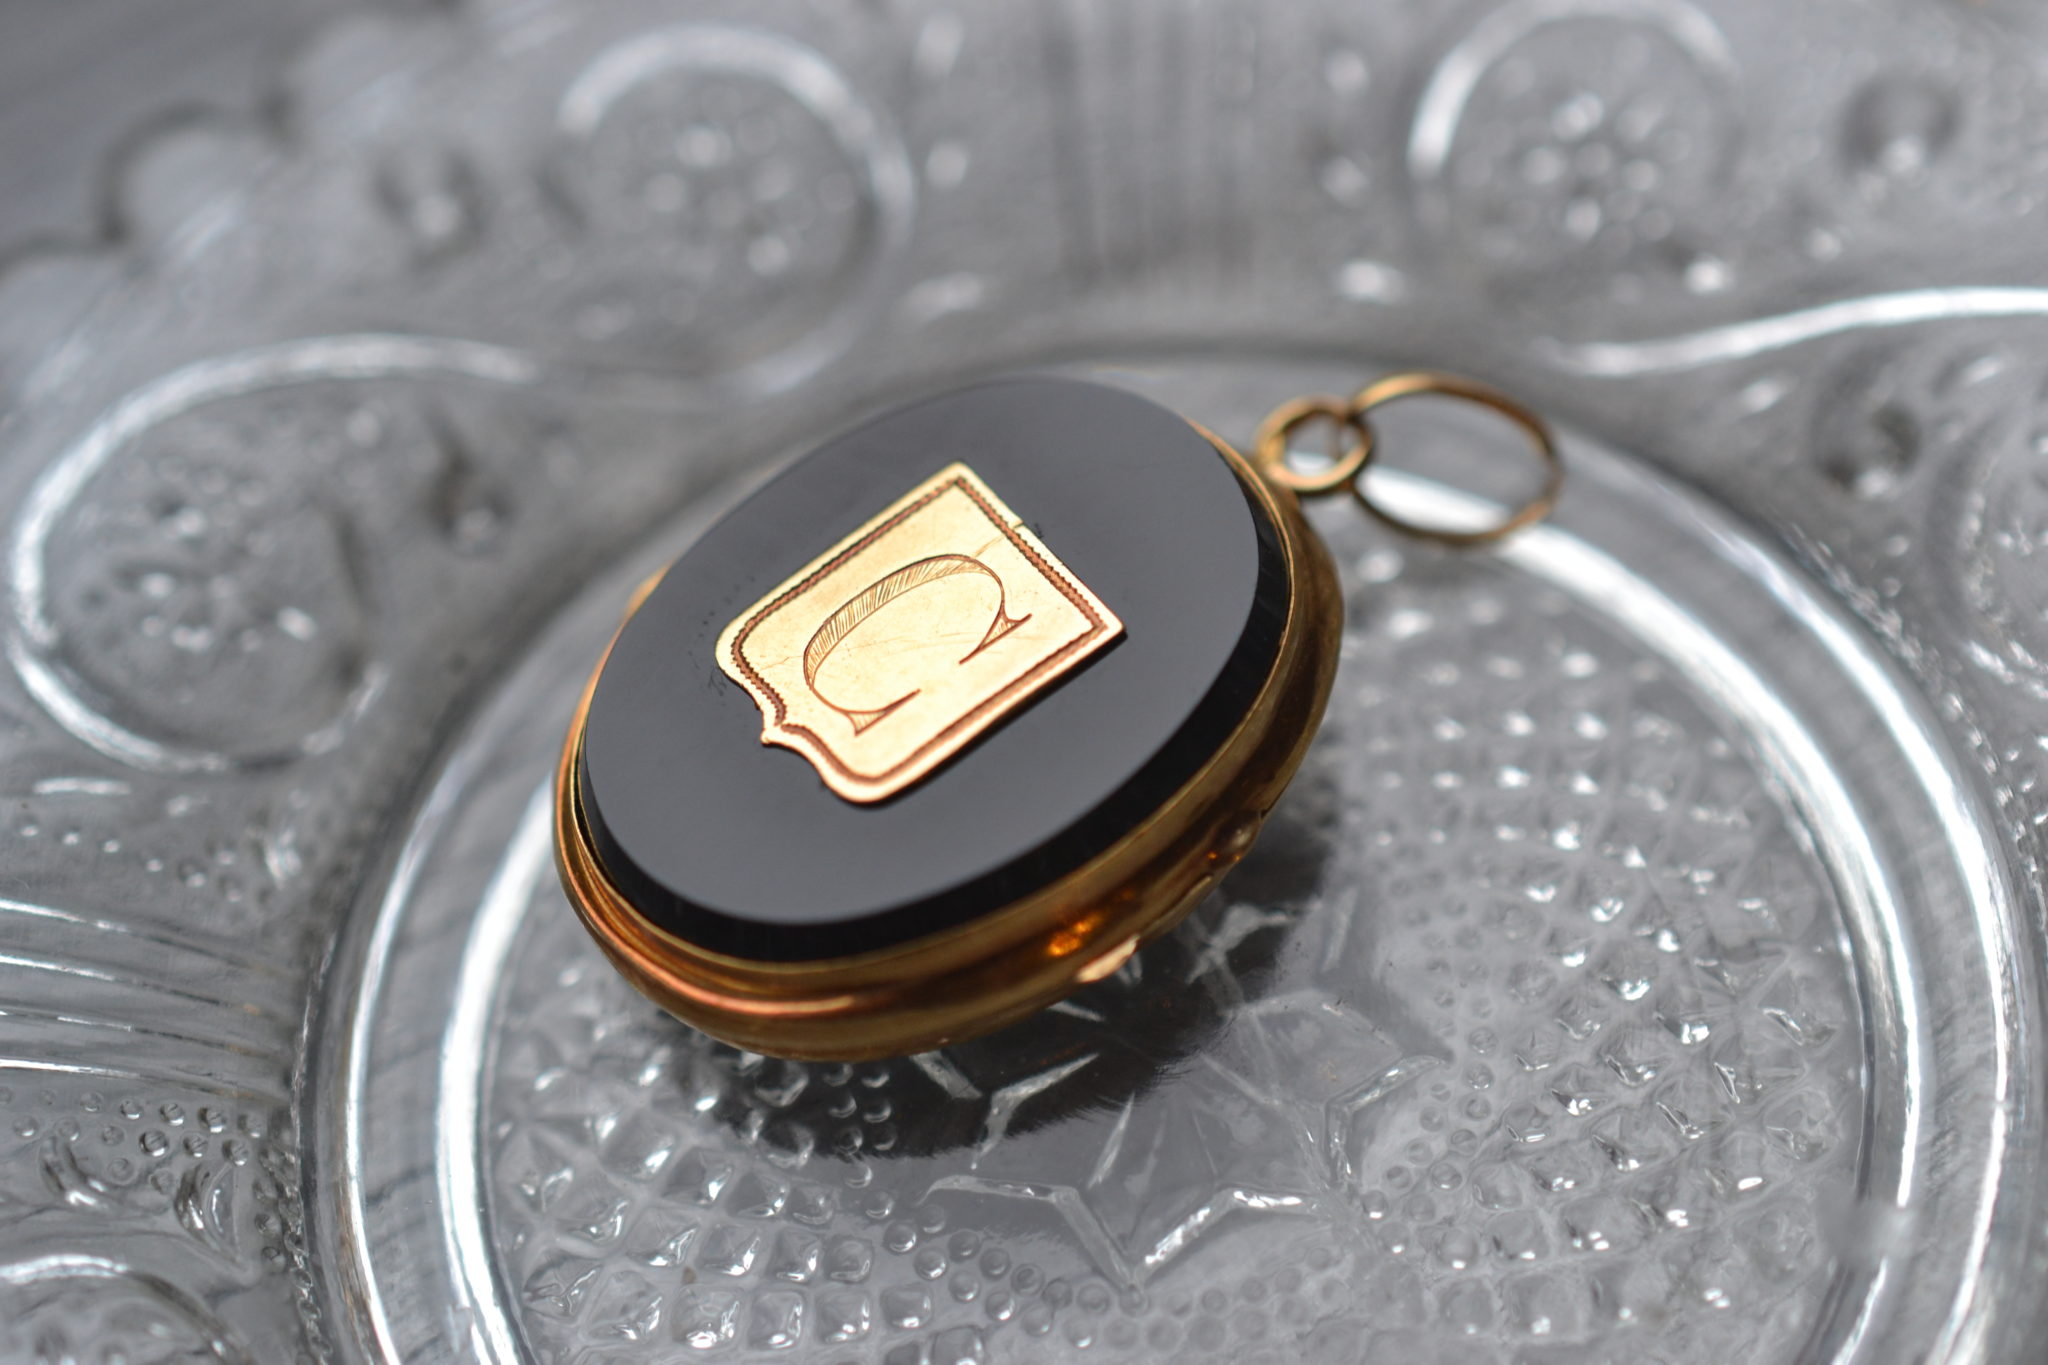 Pendentif Porte Photo - En Onyx Et Or Jaune 18 Carats - Bijoux Vintage De Seconde Main